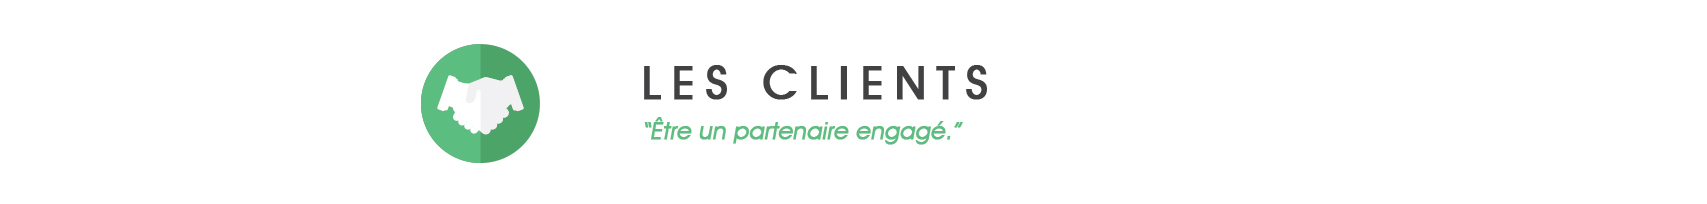 demarche-rse-aucop-nos-clients-titre-categories